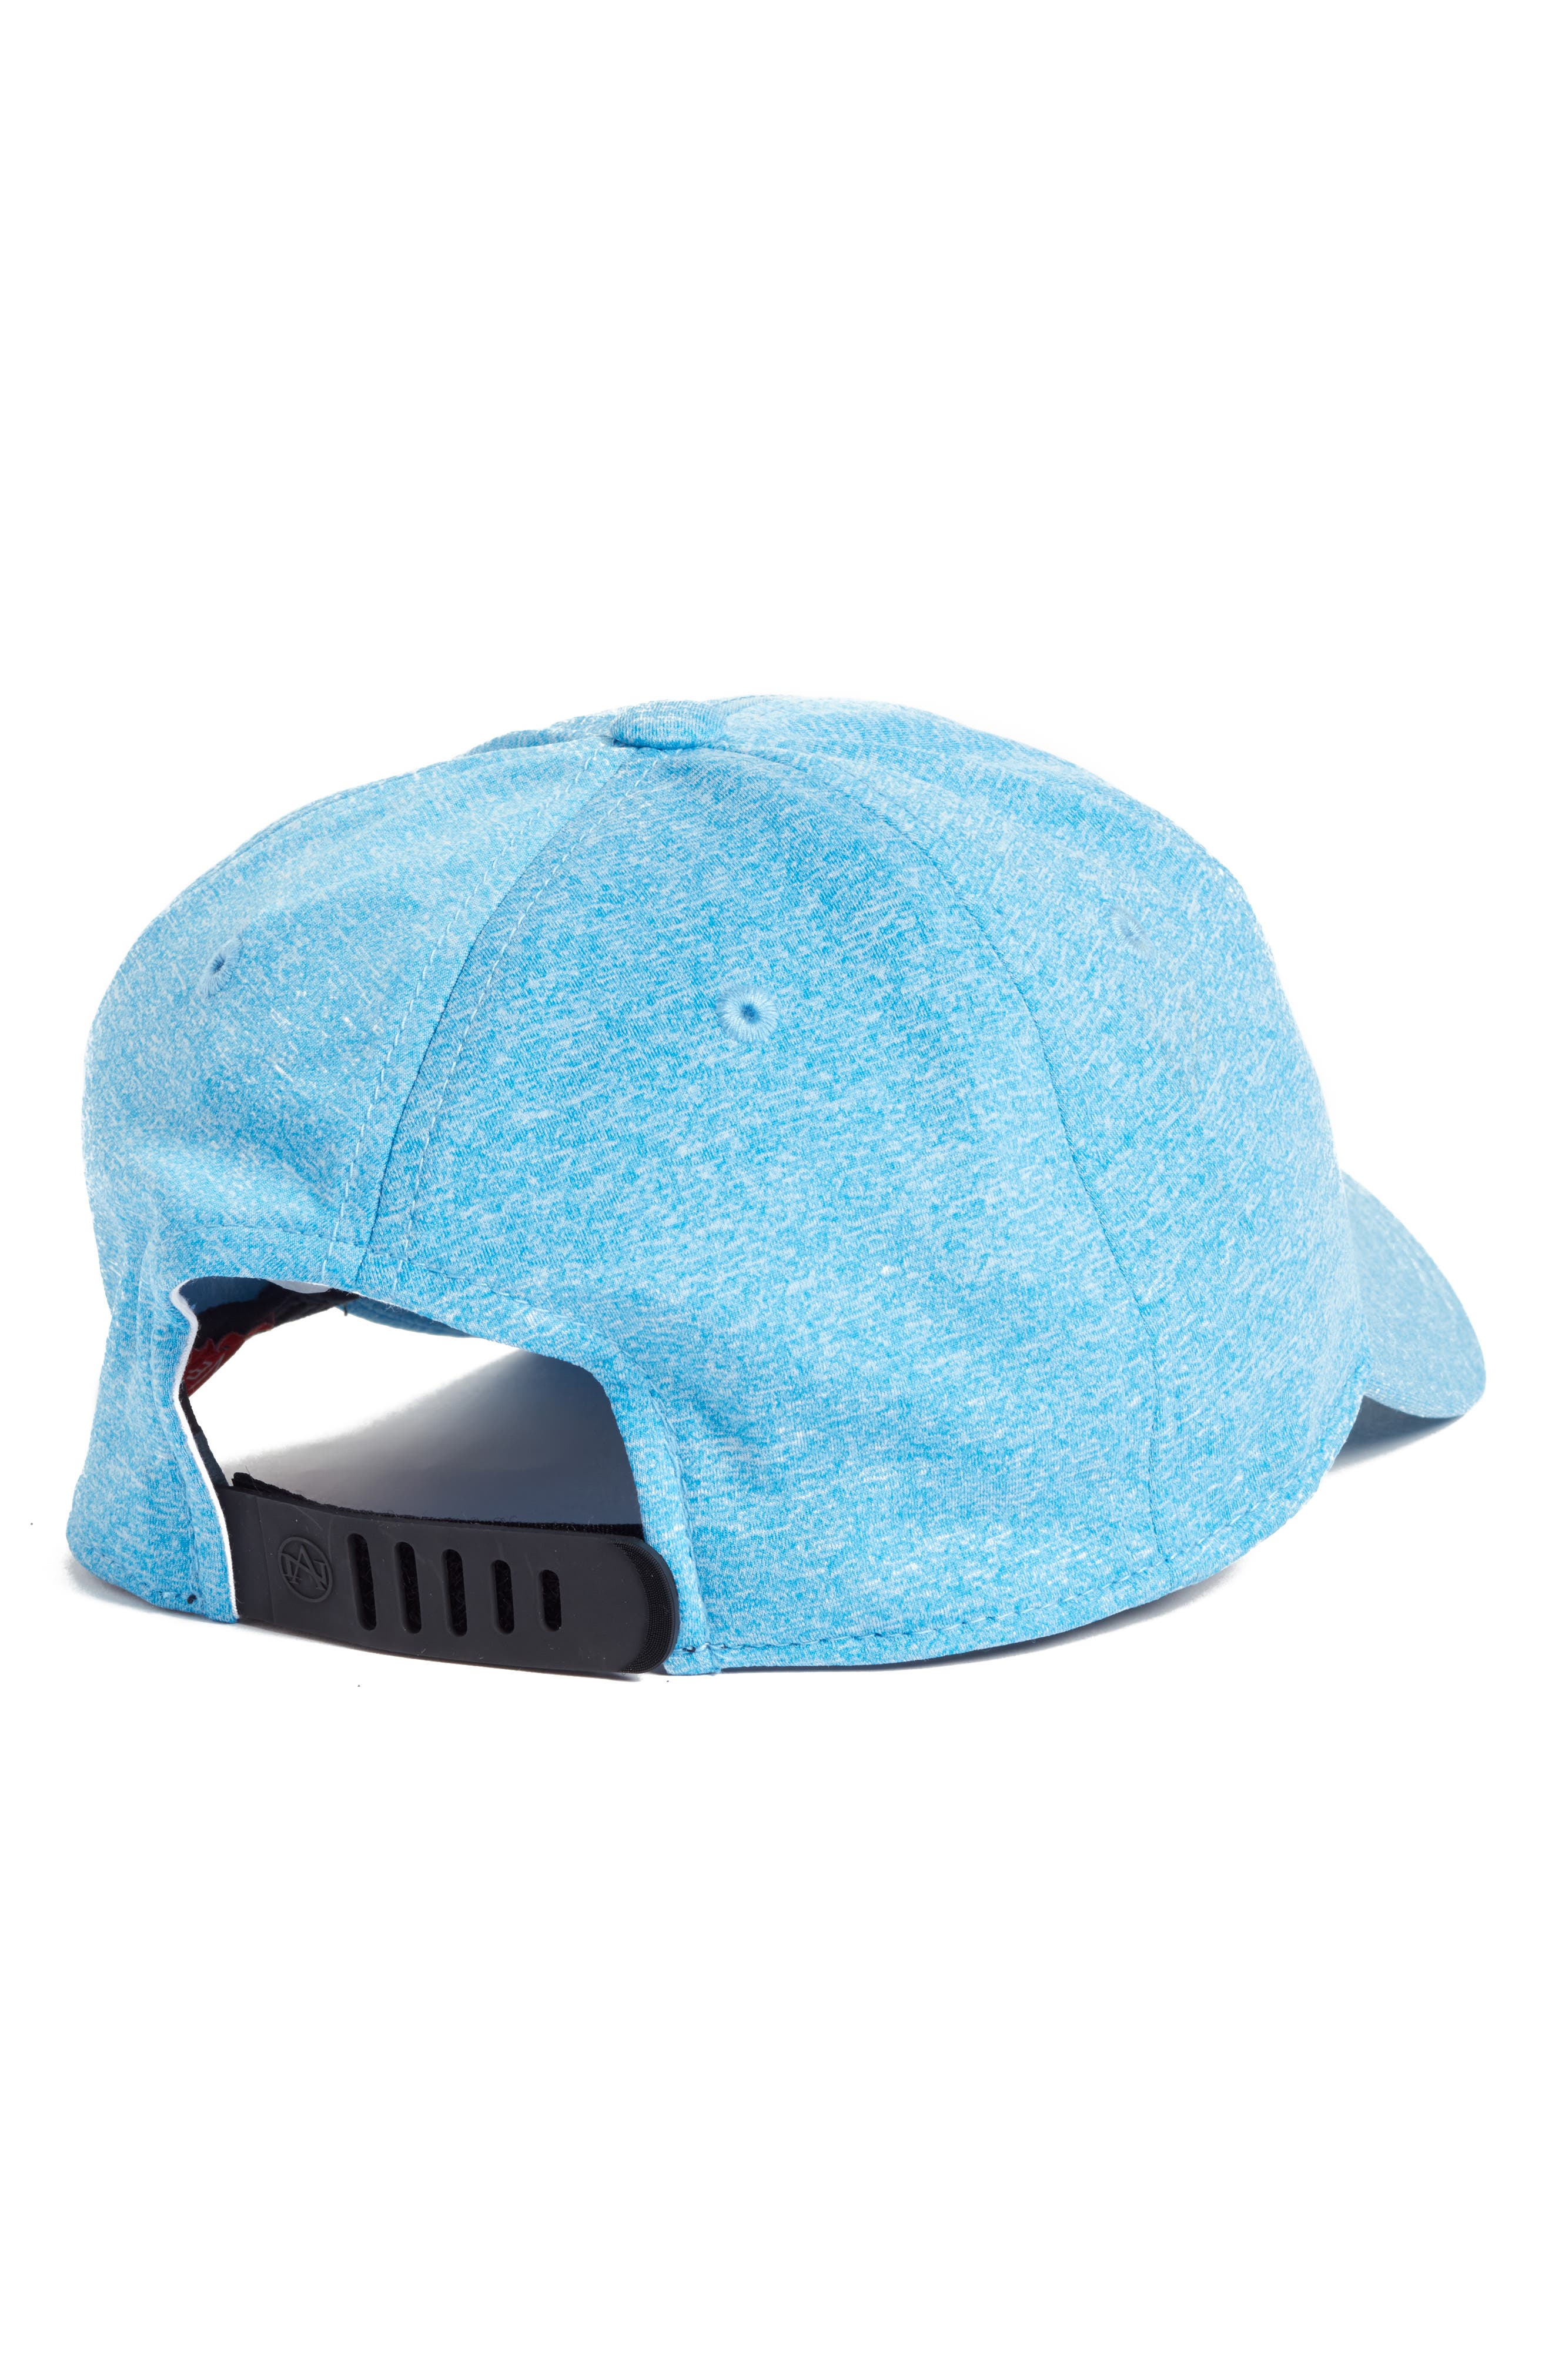 Heathered Tech Hat,                             Alternate thumbnail 2, color,                             BLUE